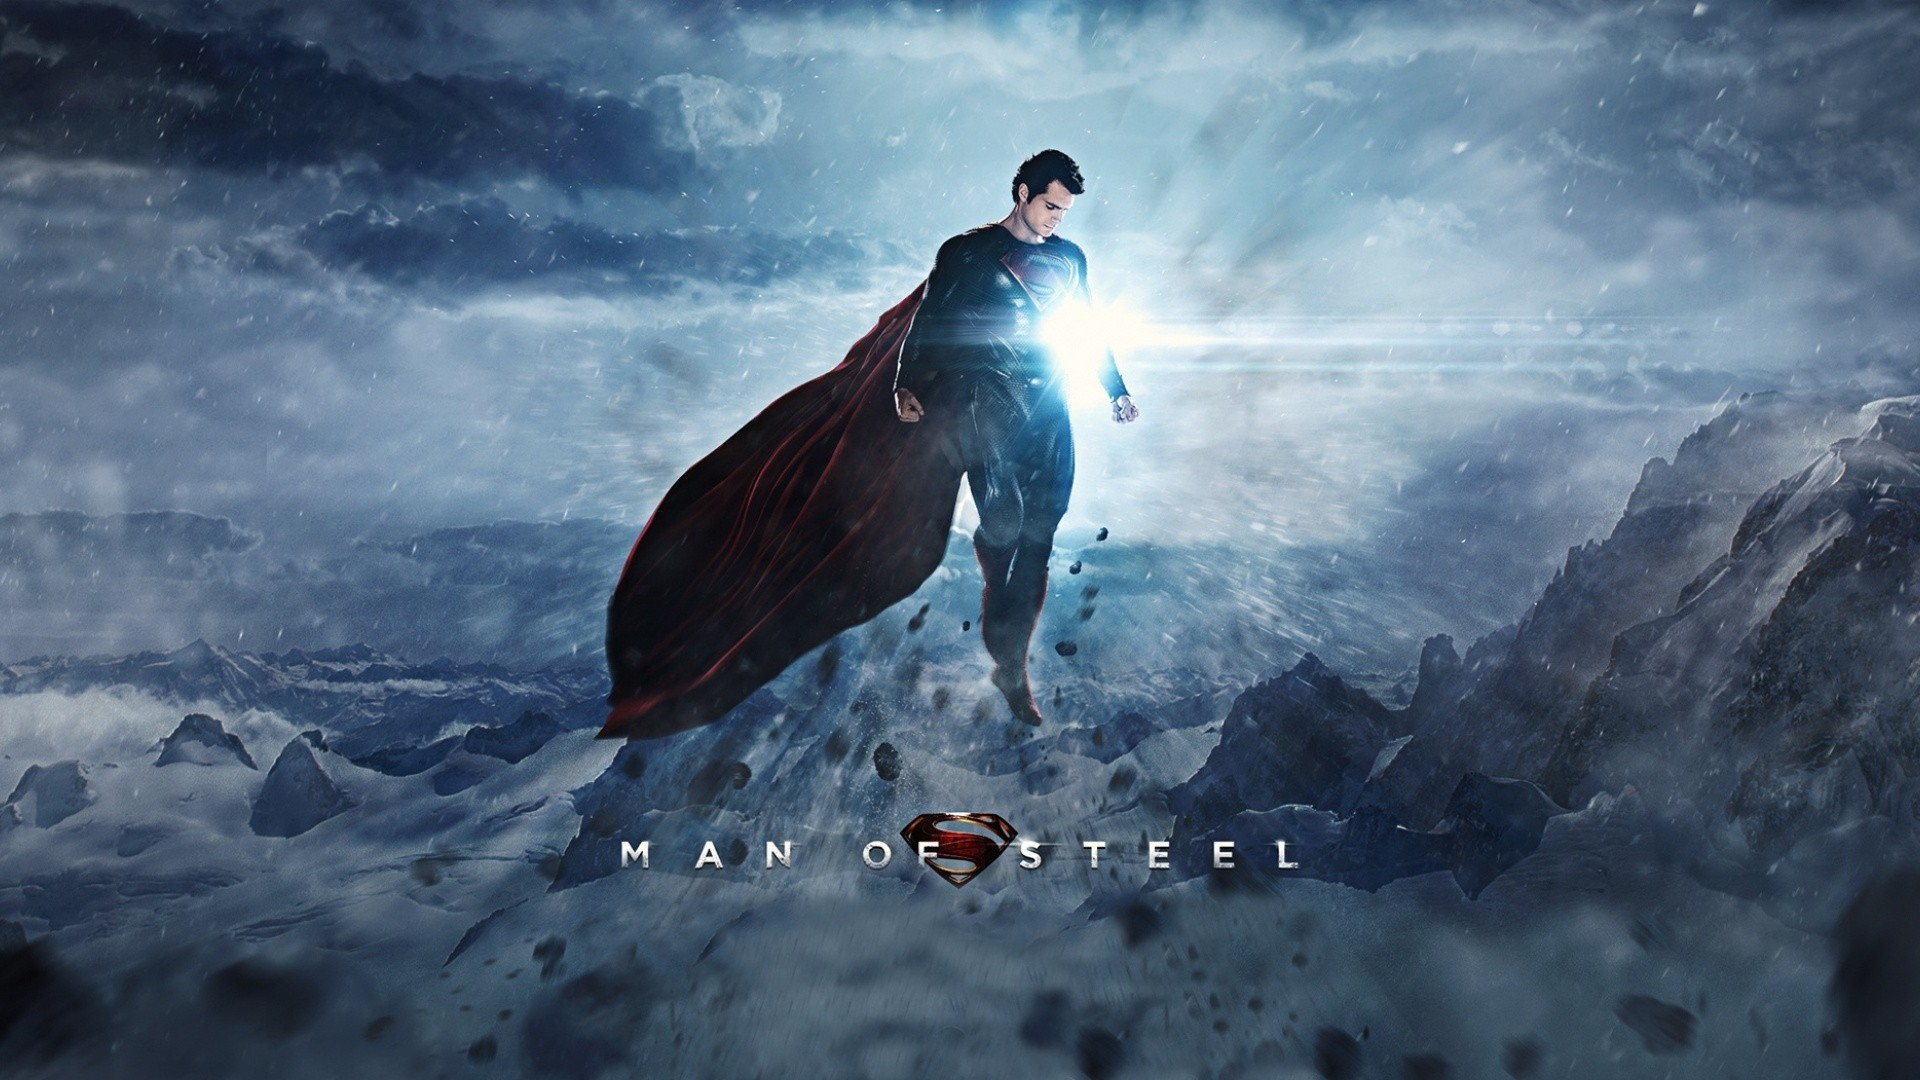 1920x1080 cA3hedfol4XZDIM0tlCrMhwUH96 Movie_Man Of Steel_404699 ...